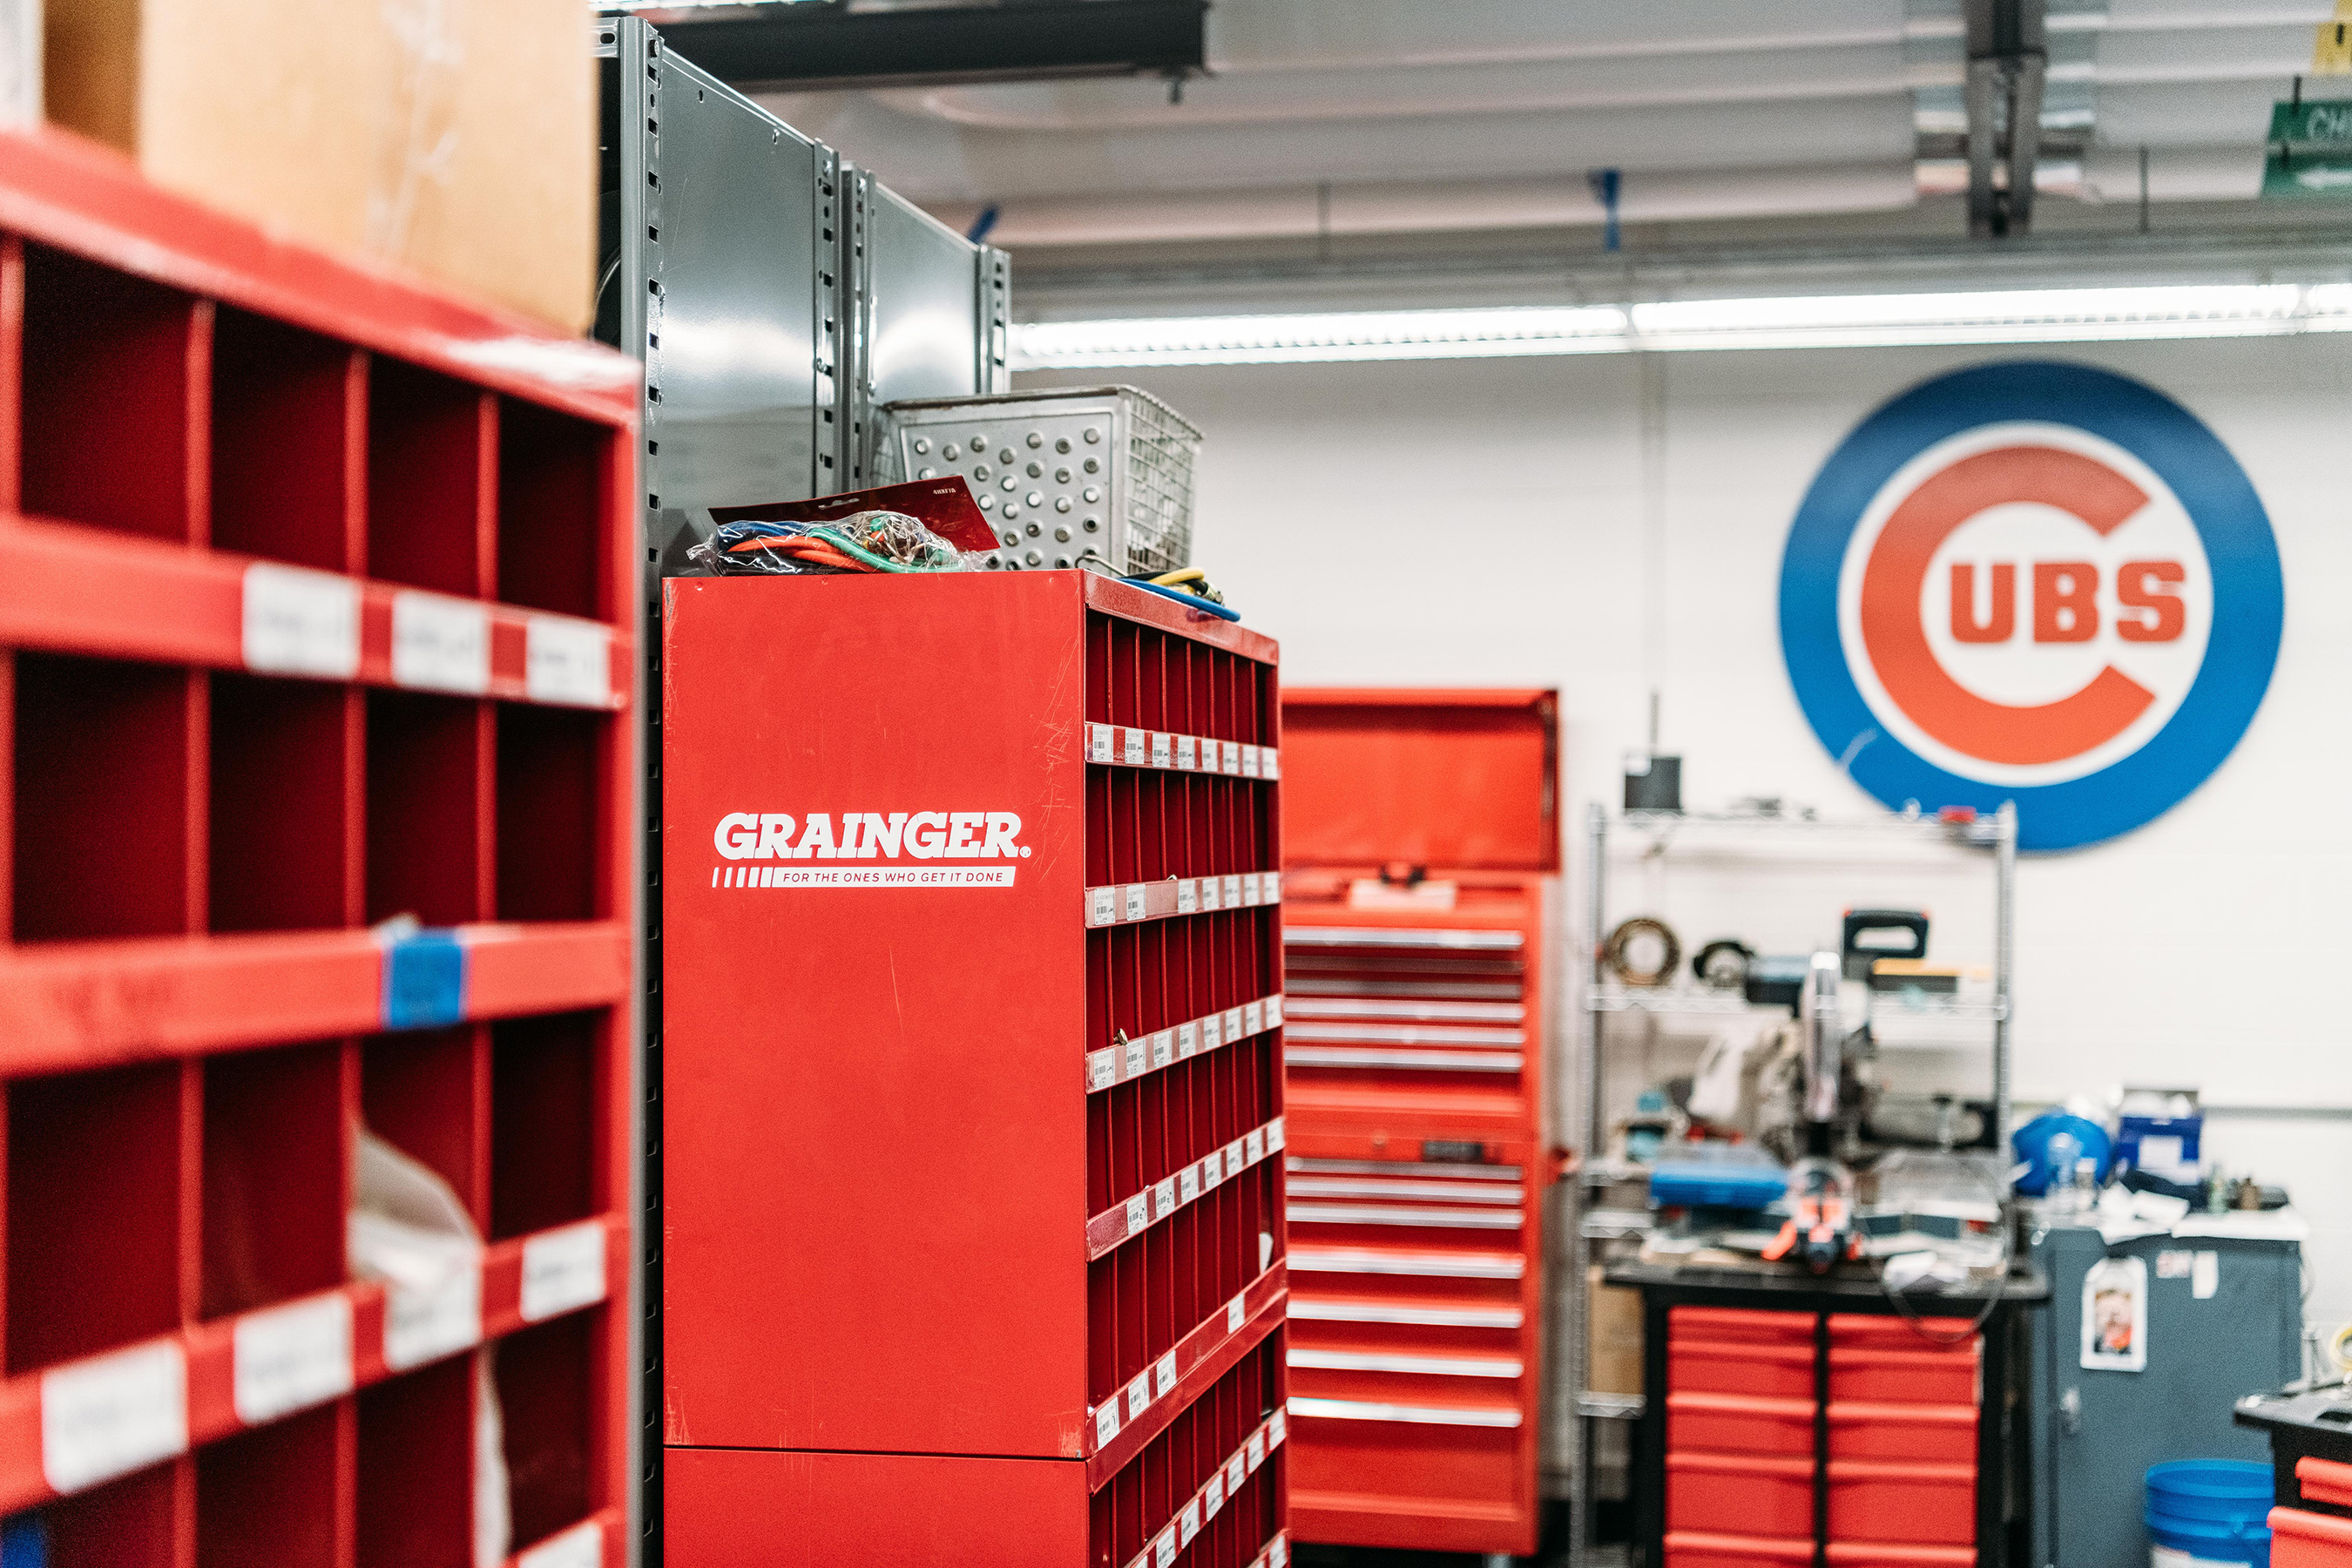 Whether it's through Grainger's broad line of products, inventory management solutions or safety services, the company continuously finds new ways to add value for customers